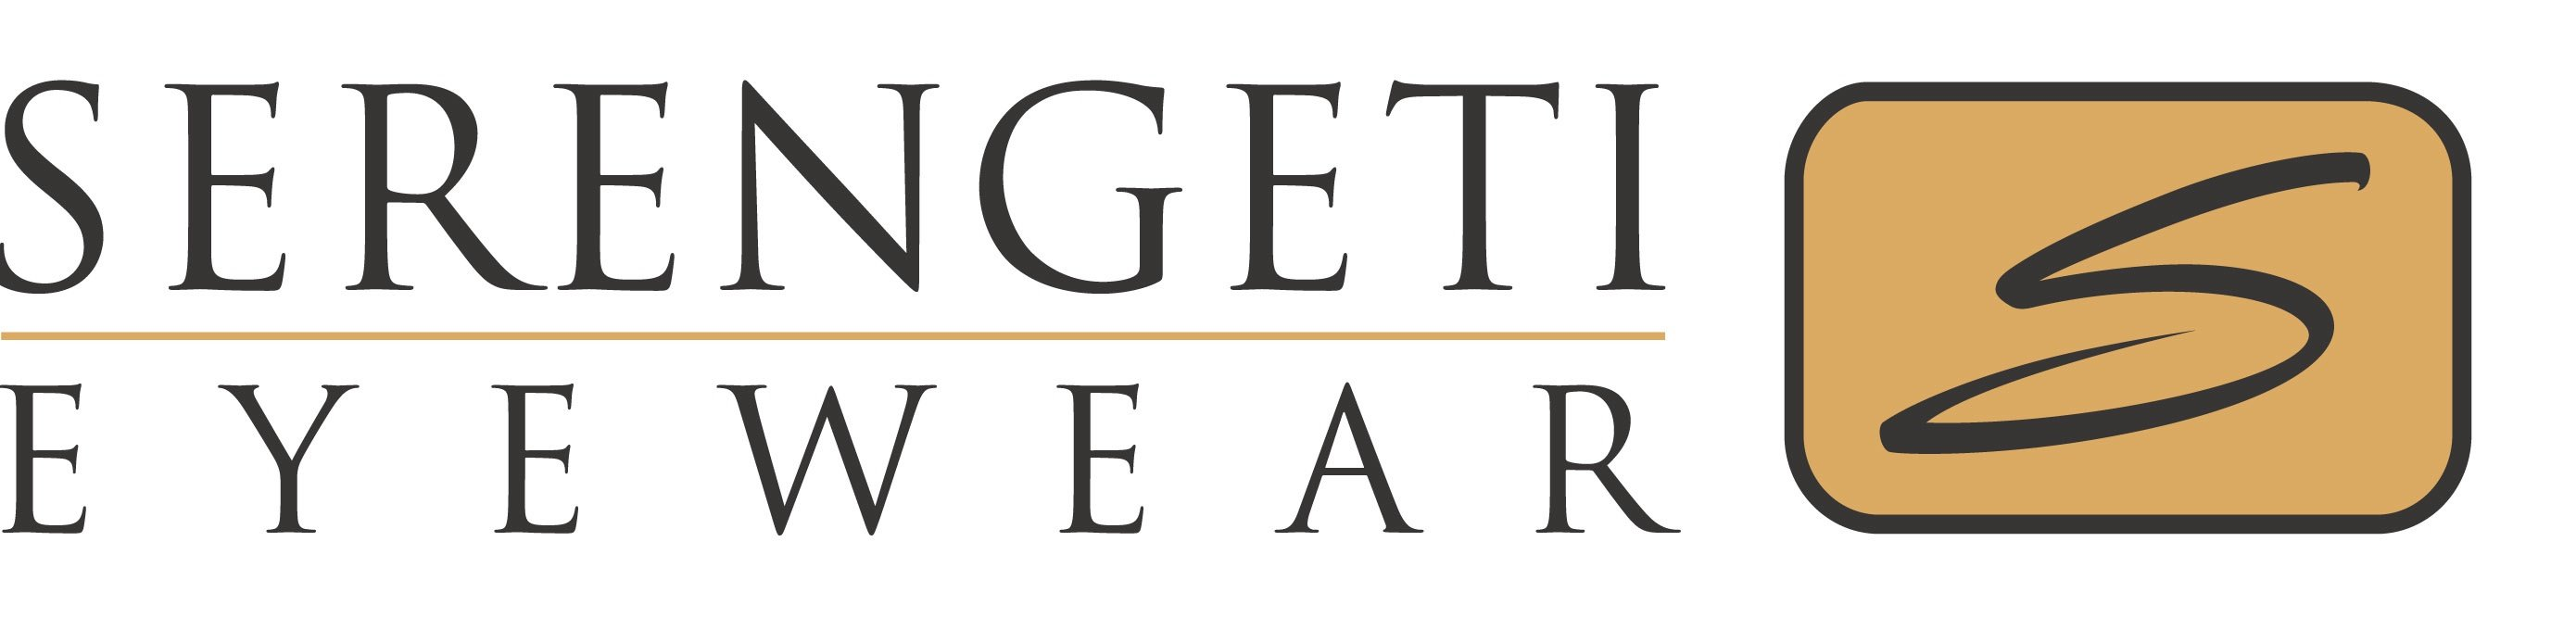 Image result for serengeti logo